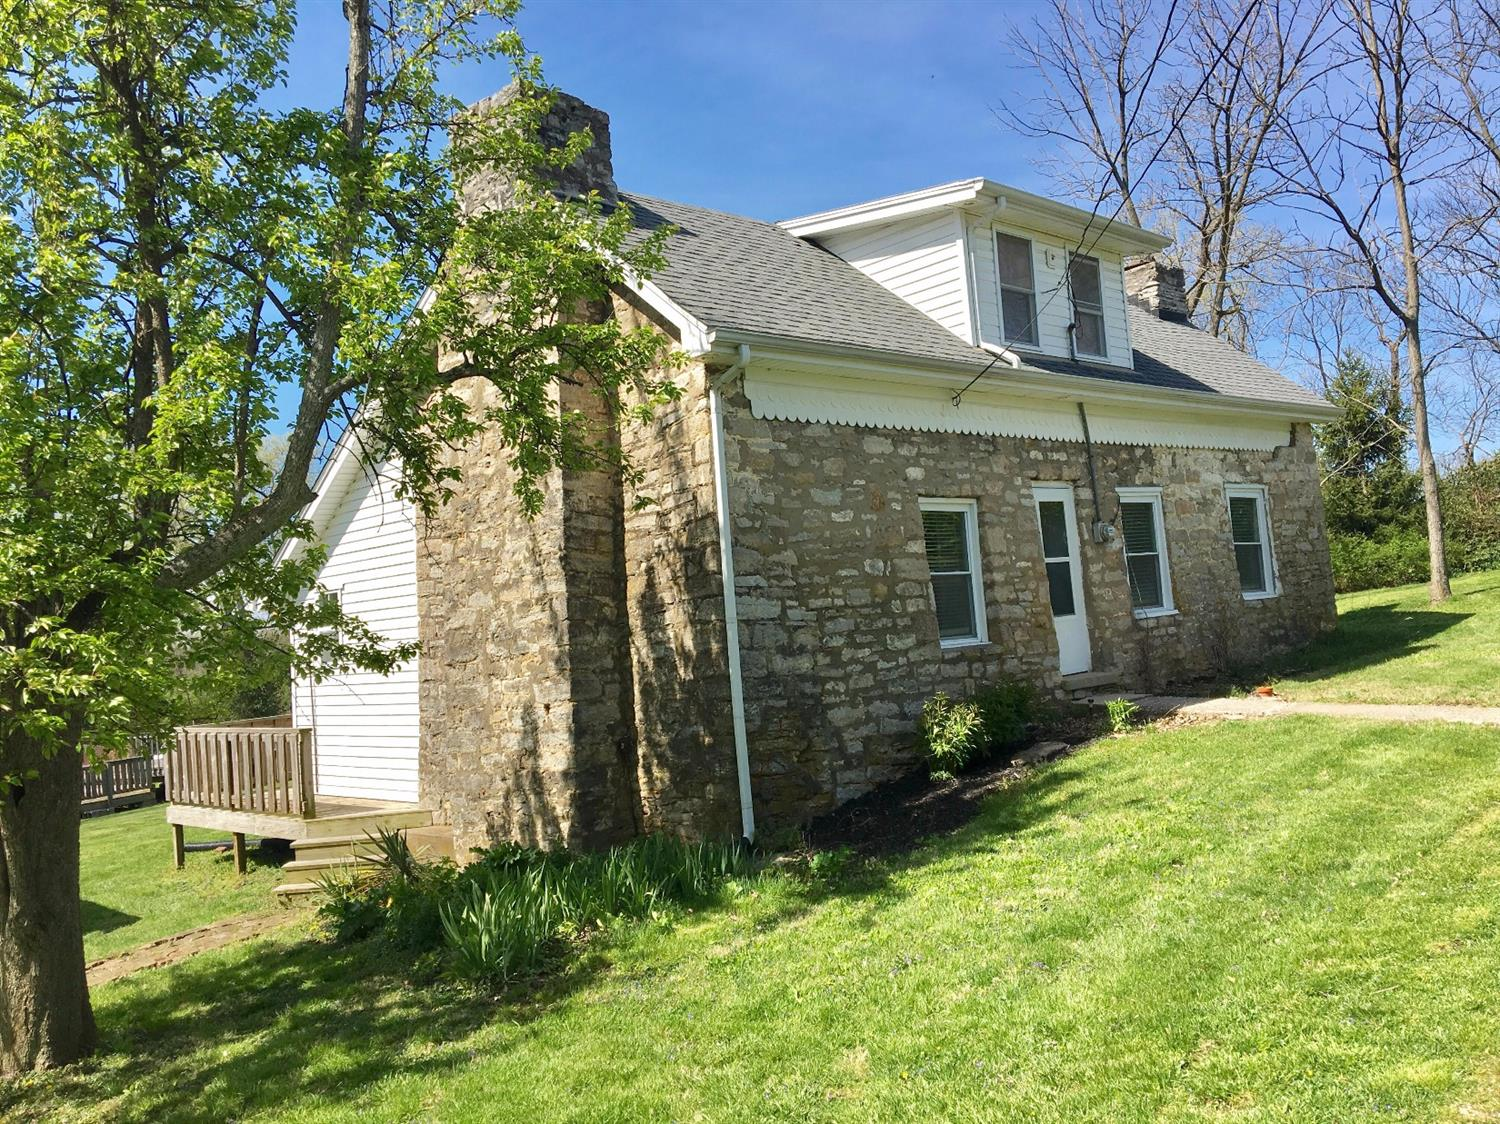 Home For Sale at 875 S Benson Rd, Frankfort, KY 40601